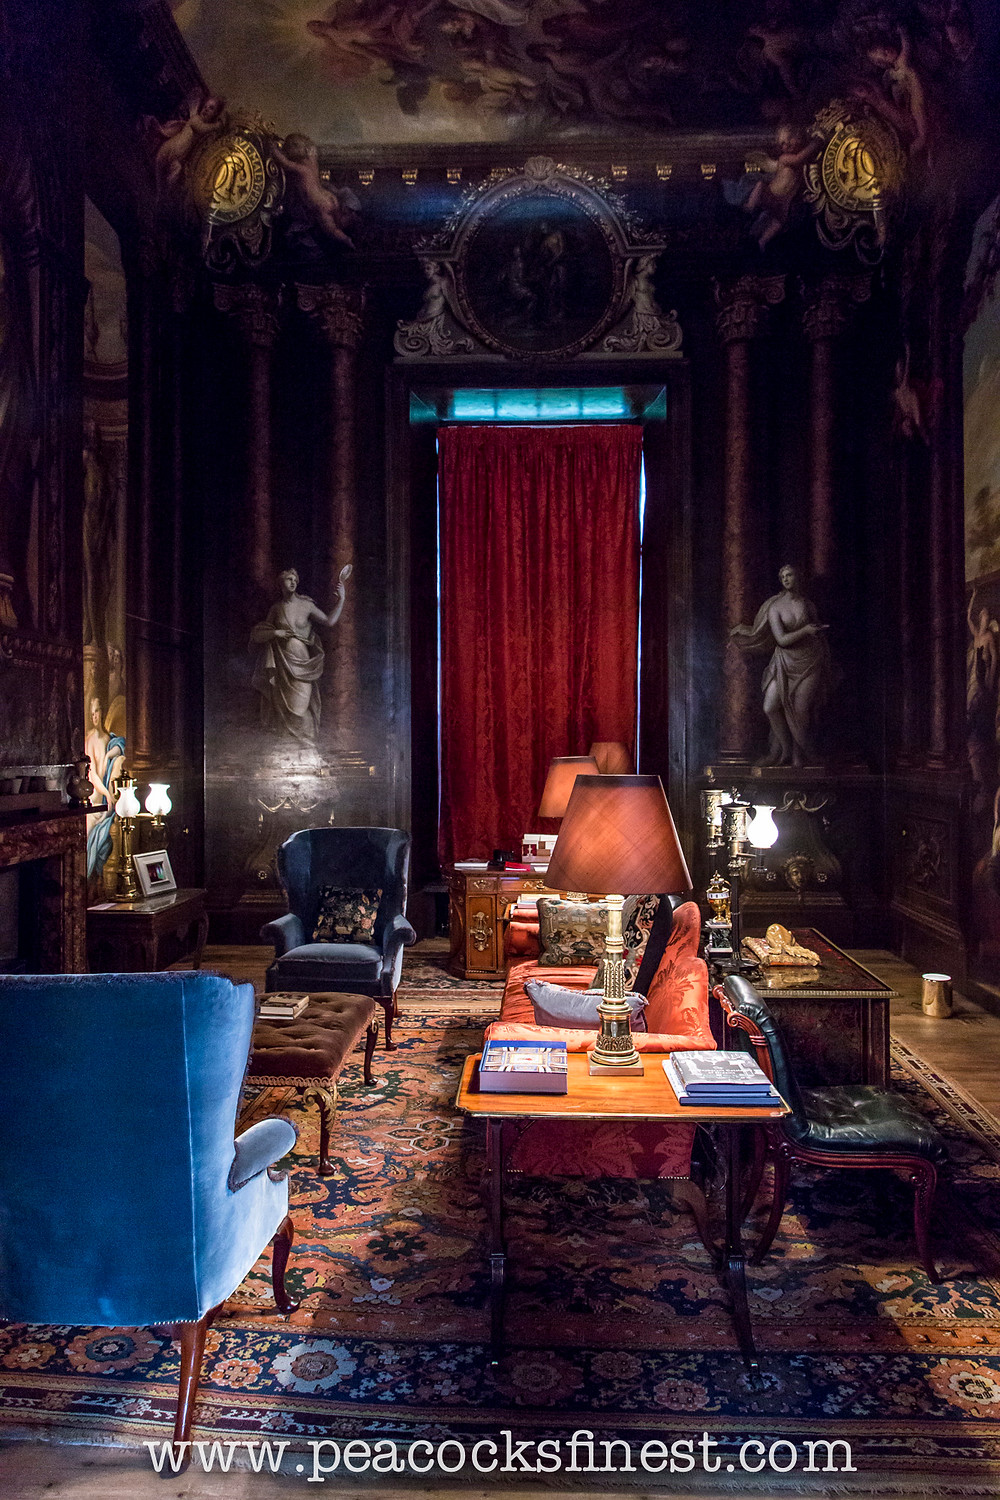 Antique English furniture in historic interiors at Chatsworth House